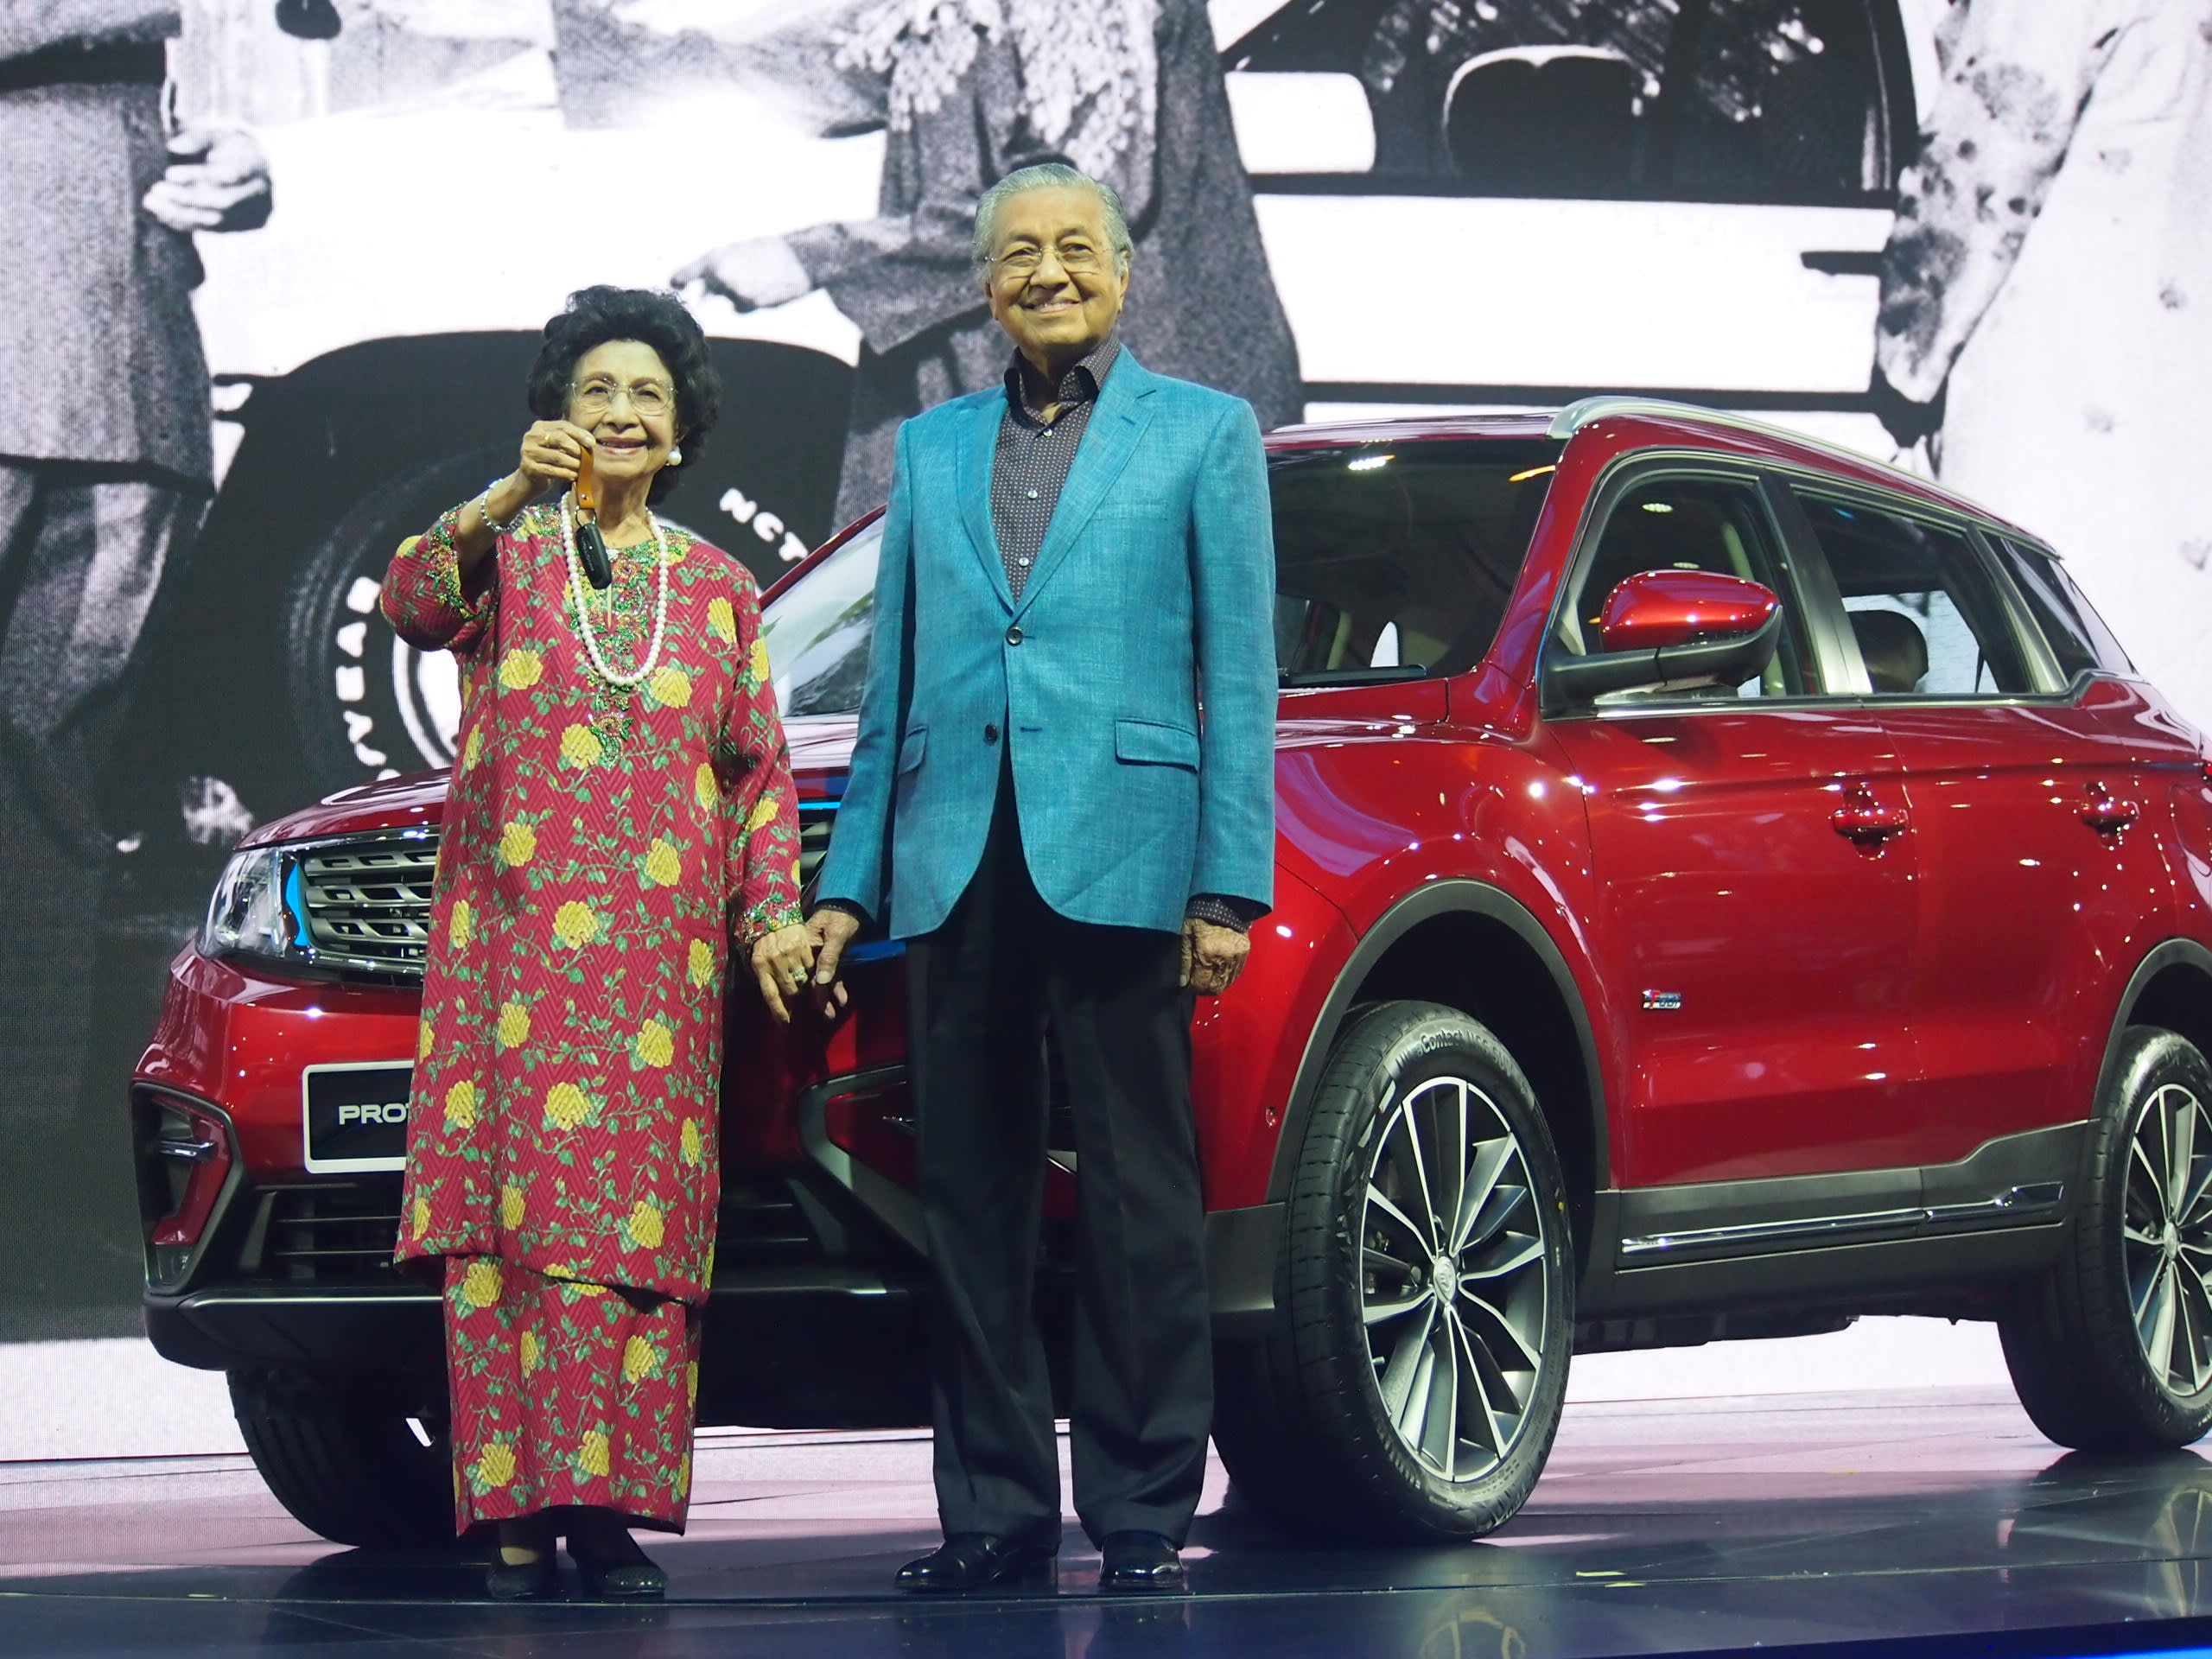 Malaysian Prime Minister Mahathir Mohamad took center stage at the launch of the Proton X70 on Dec. 12, 2018. Image: CK Tan/Nikei Asian Review